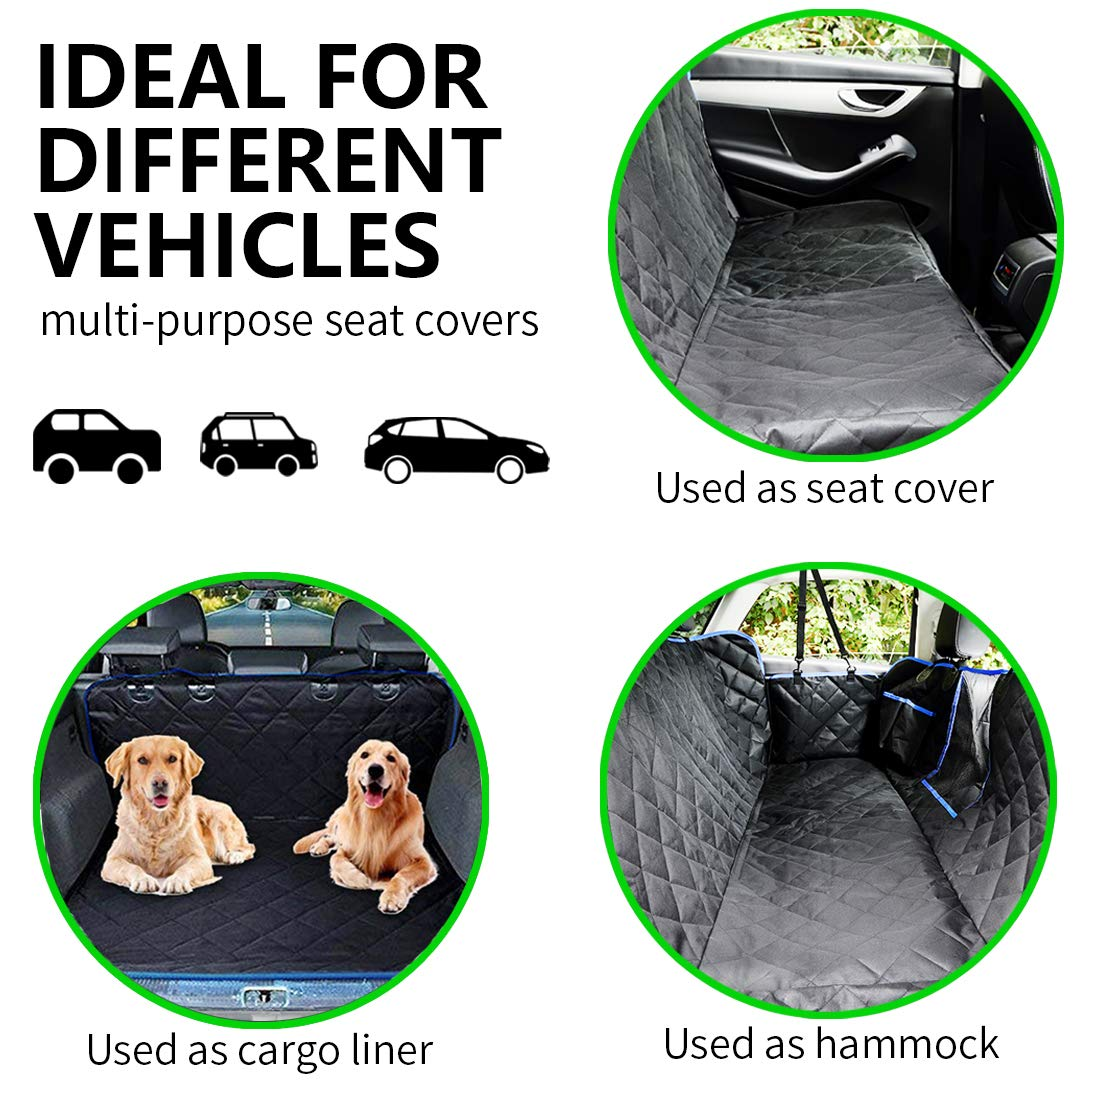 SUPSOO Dog Car Seat Cover Waterproof Durable Anti-Scratch Nonslip Back Seat Pet Protection Dog Travel Hammock with Mesh Window and Side Flaps for Cars/Trucks/SUV by SUPSOO (Image #4)